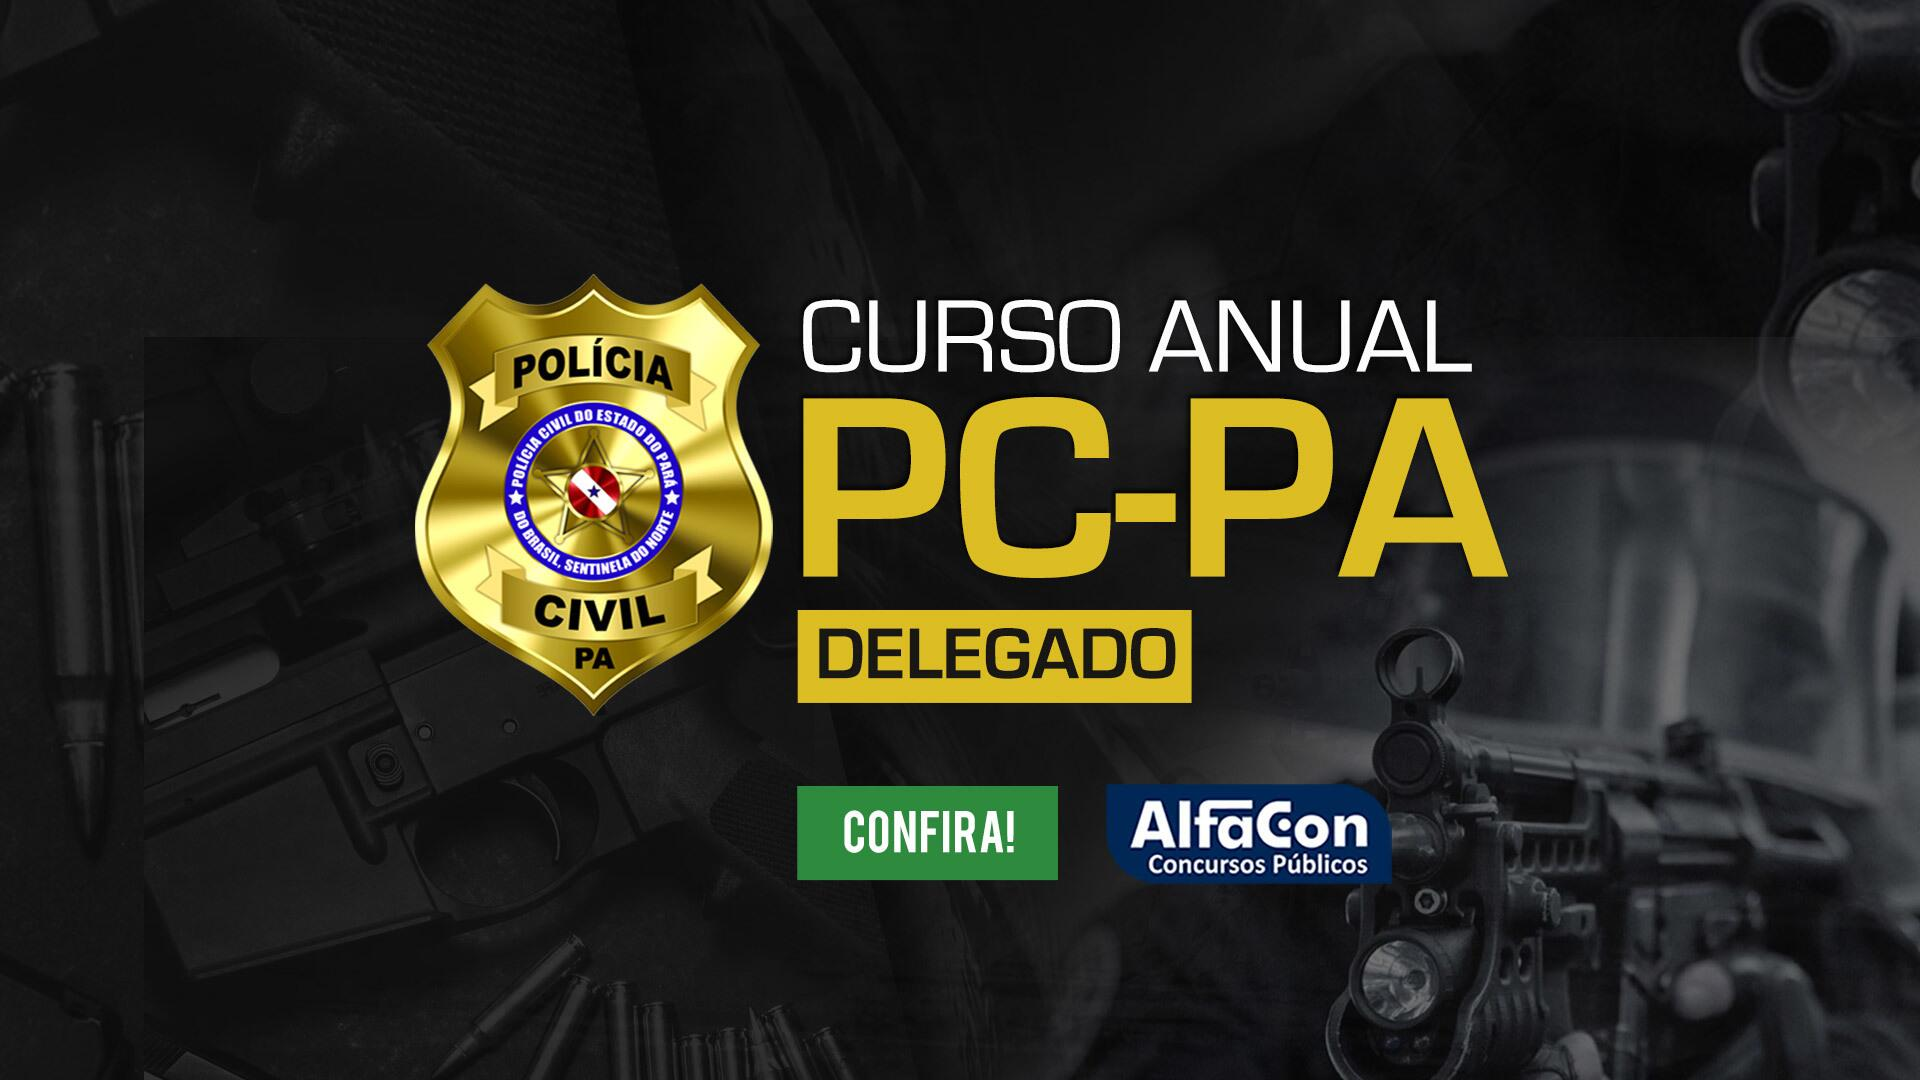 PC PA - Delegado da Polícia Civil do Pará